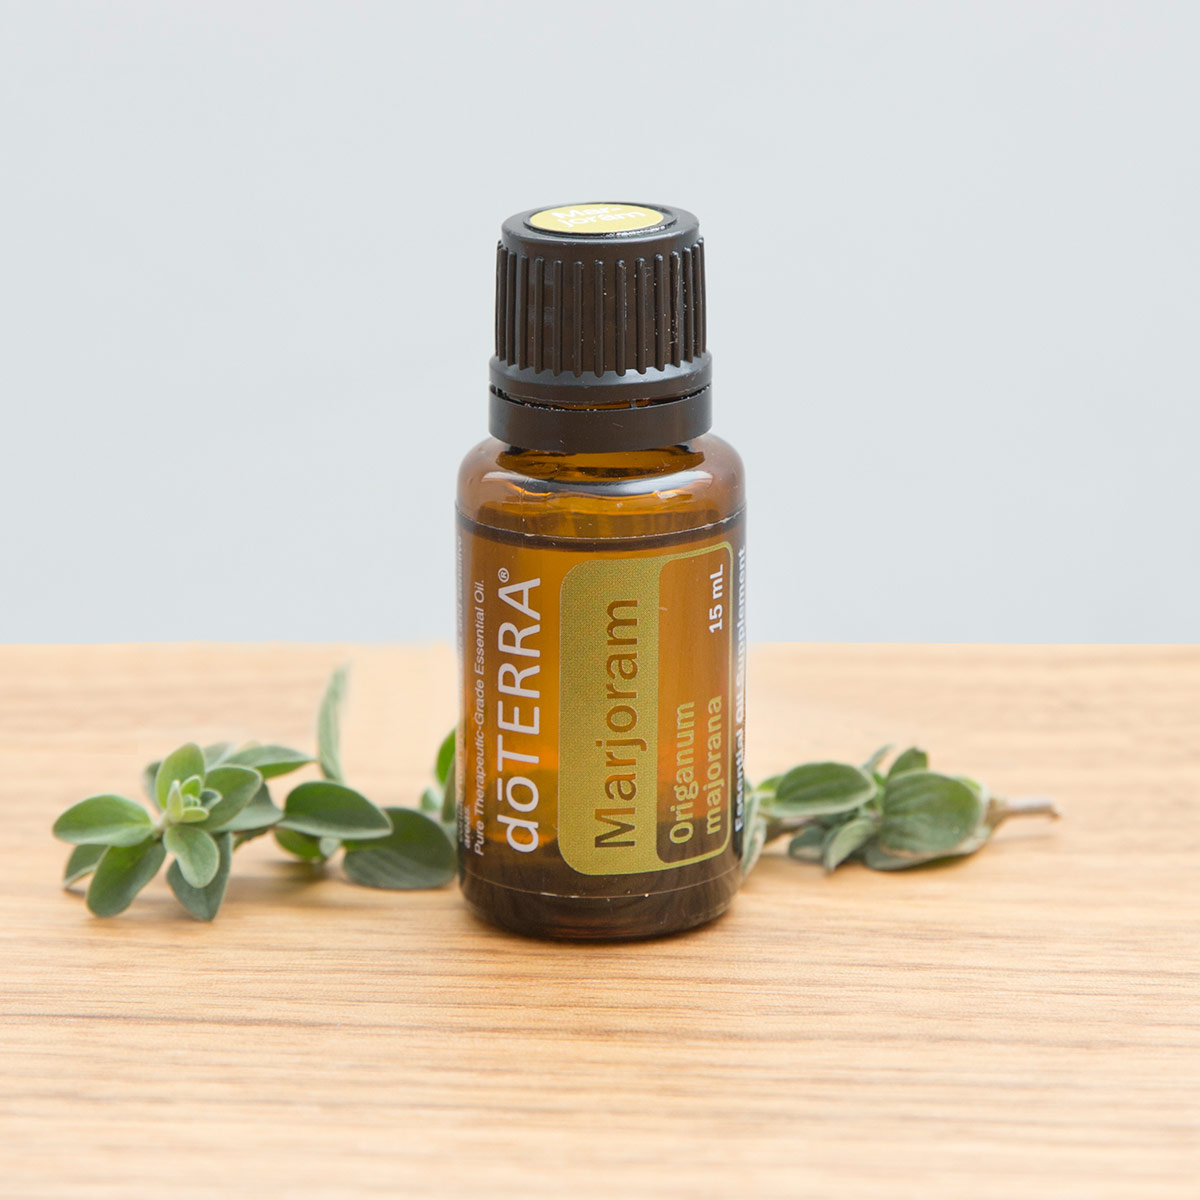 Bottle of doTERRA Marjoram oil on wooden surface next to fresh marjoram leaves. What does Marjoram oil smell like? Marjoram essential oil is known to have a warm, woody, and herbaceous aroma.